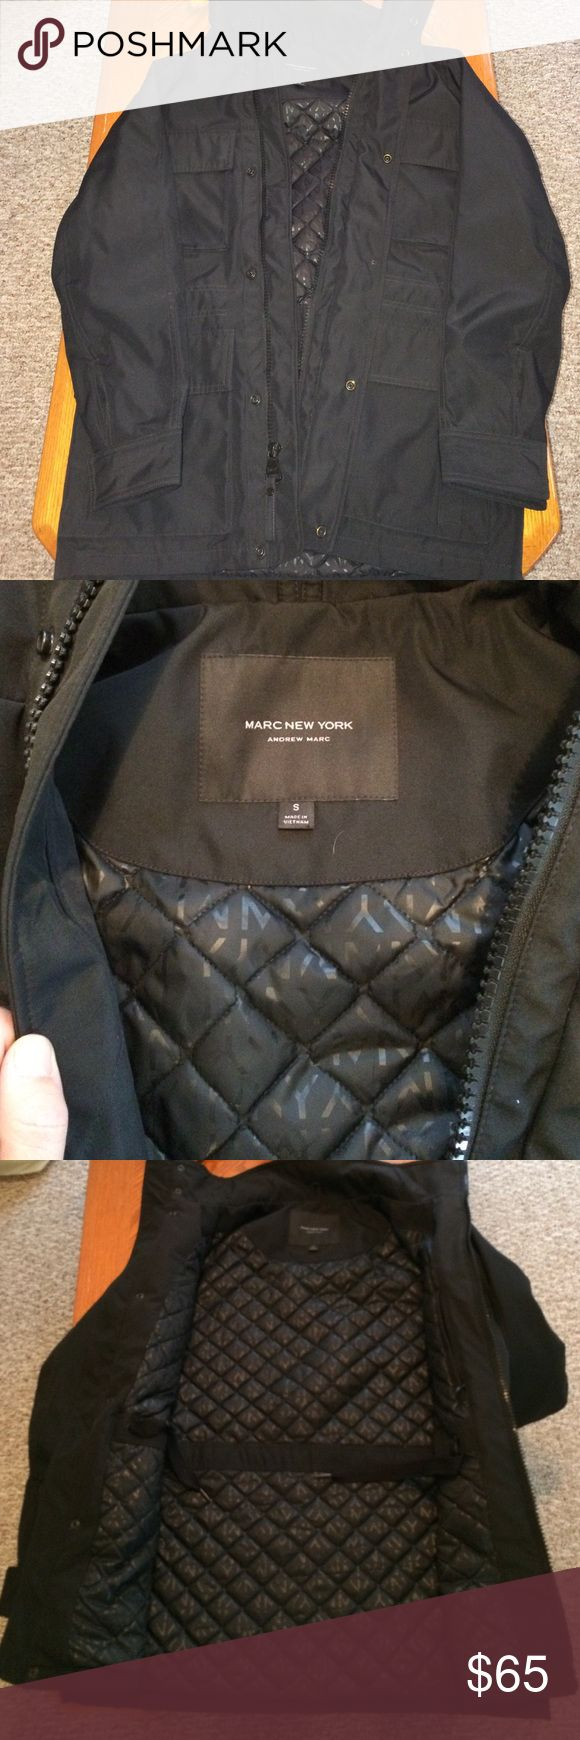 NWOT Small MarcNY Andrew Marc 4 pocket black Jckt Never worn was too small. I bought it because it was sooo nice and it's completely new!! Pure black color and sharp jacket. I'm 6'3 and put it on in my house to wear it out and always wanted to but I just have to be honest and let it go. Perfect NWOT!! Marc New York- Andrew Marc- Size Small Andrew Marc Jackets & Coats